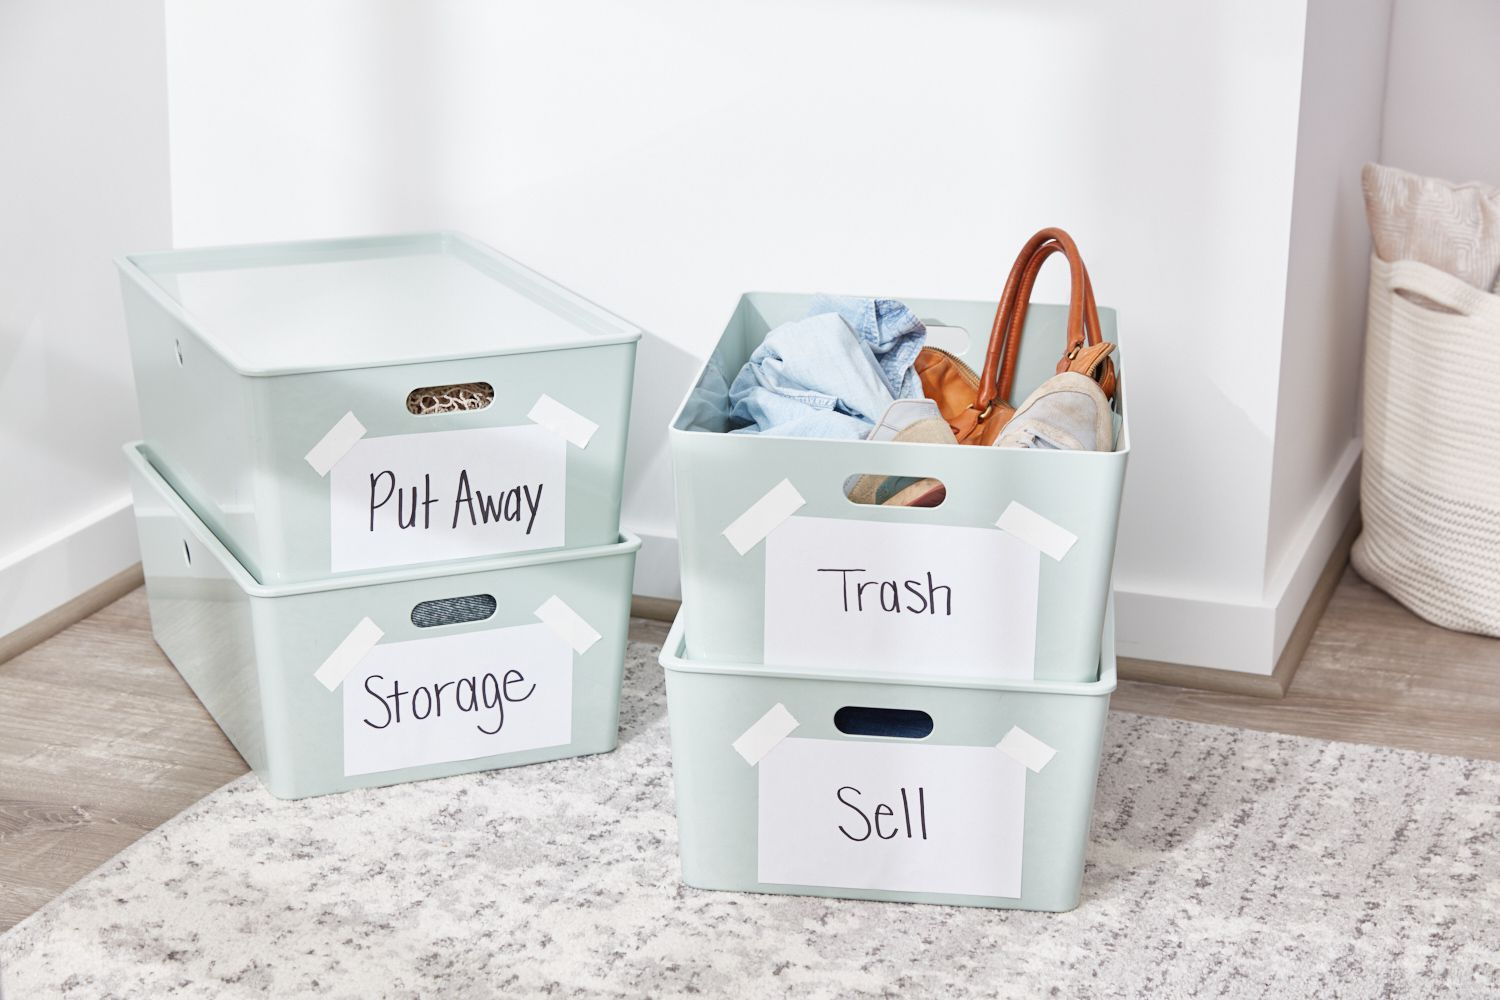 deciding when to part with items is a big part of avoiding clutter